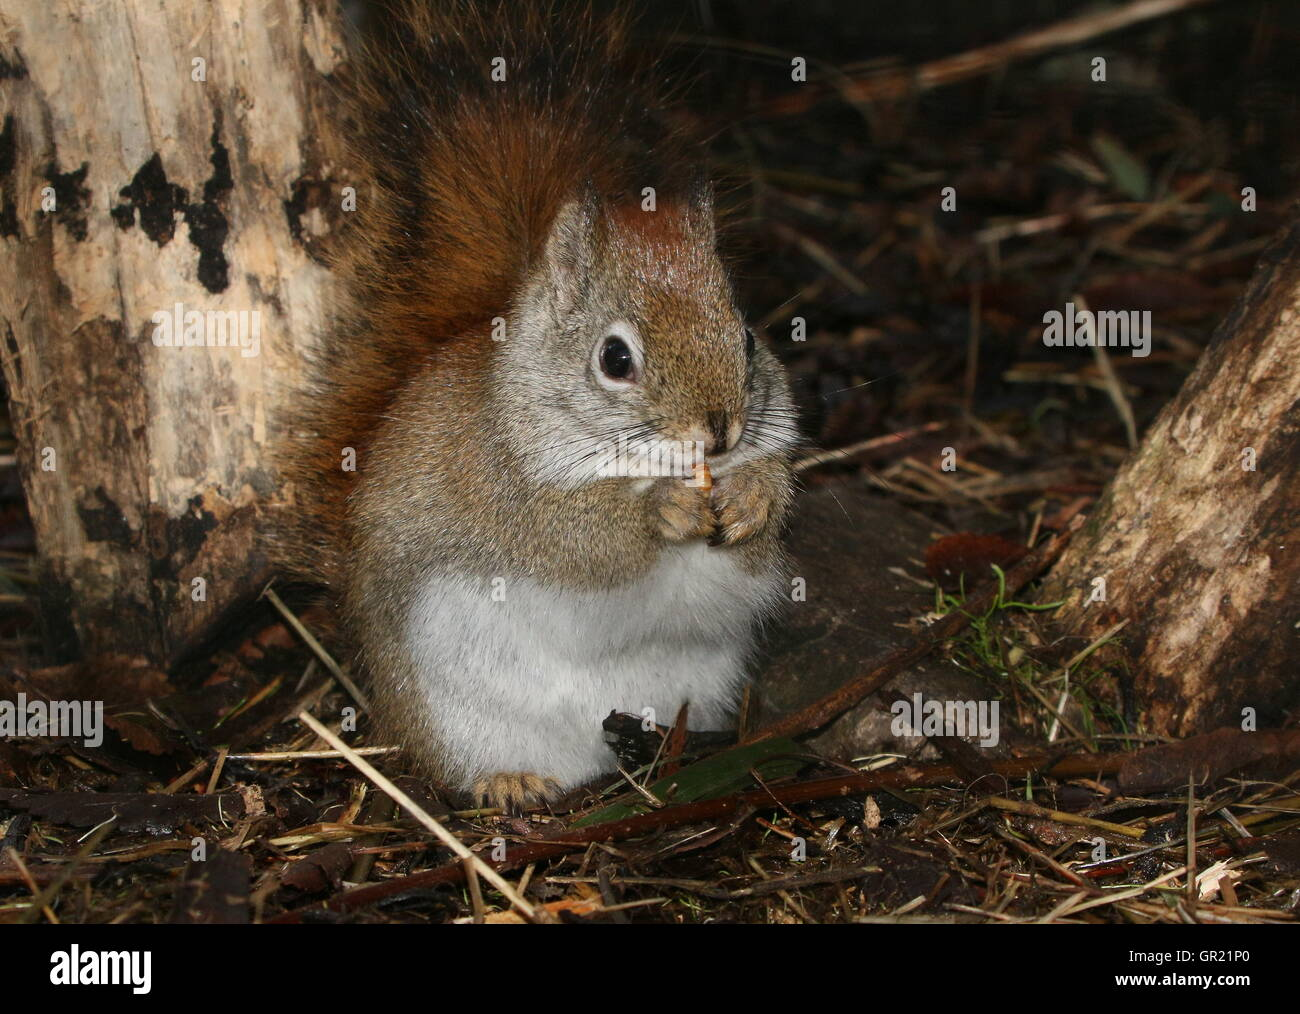 North American  Red Squirrel (Tamiasciurus hudsonicus) - Stock Image